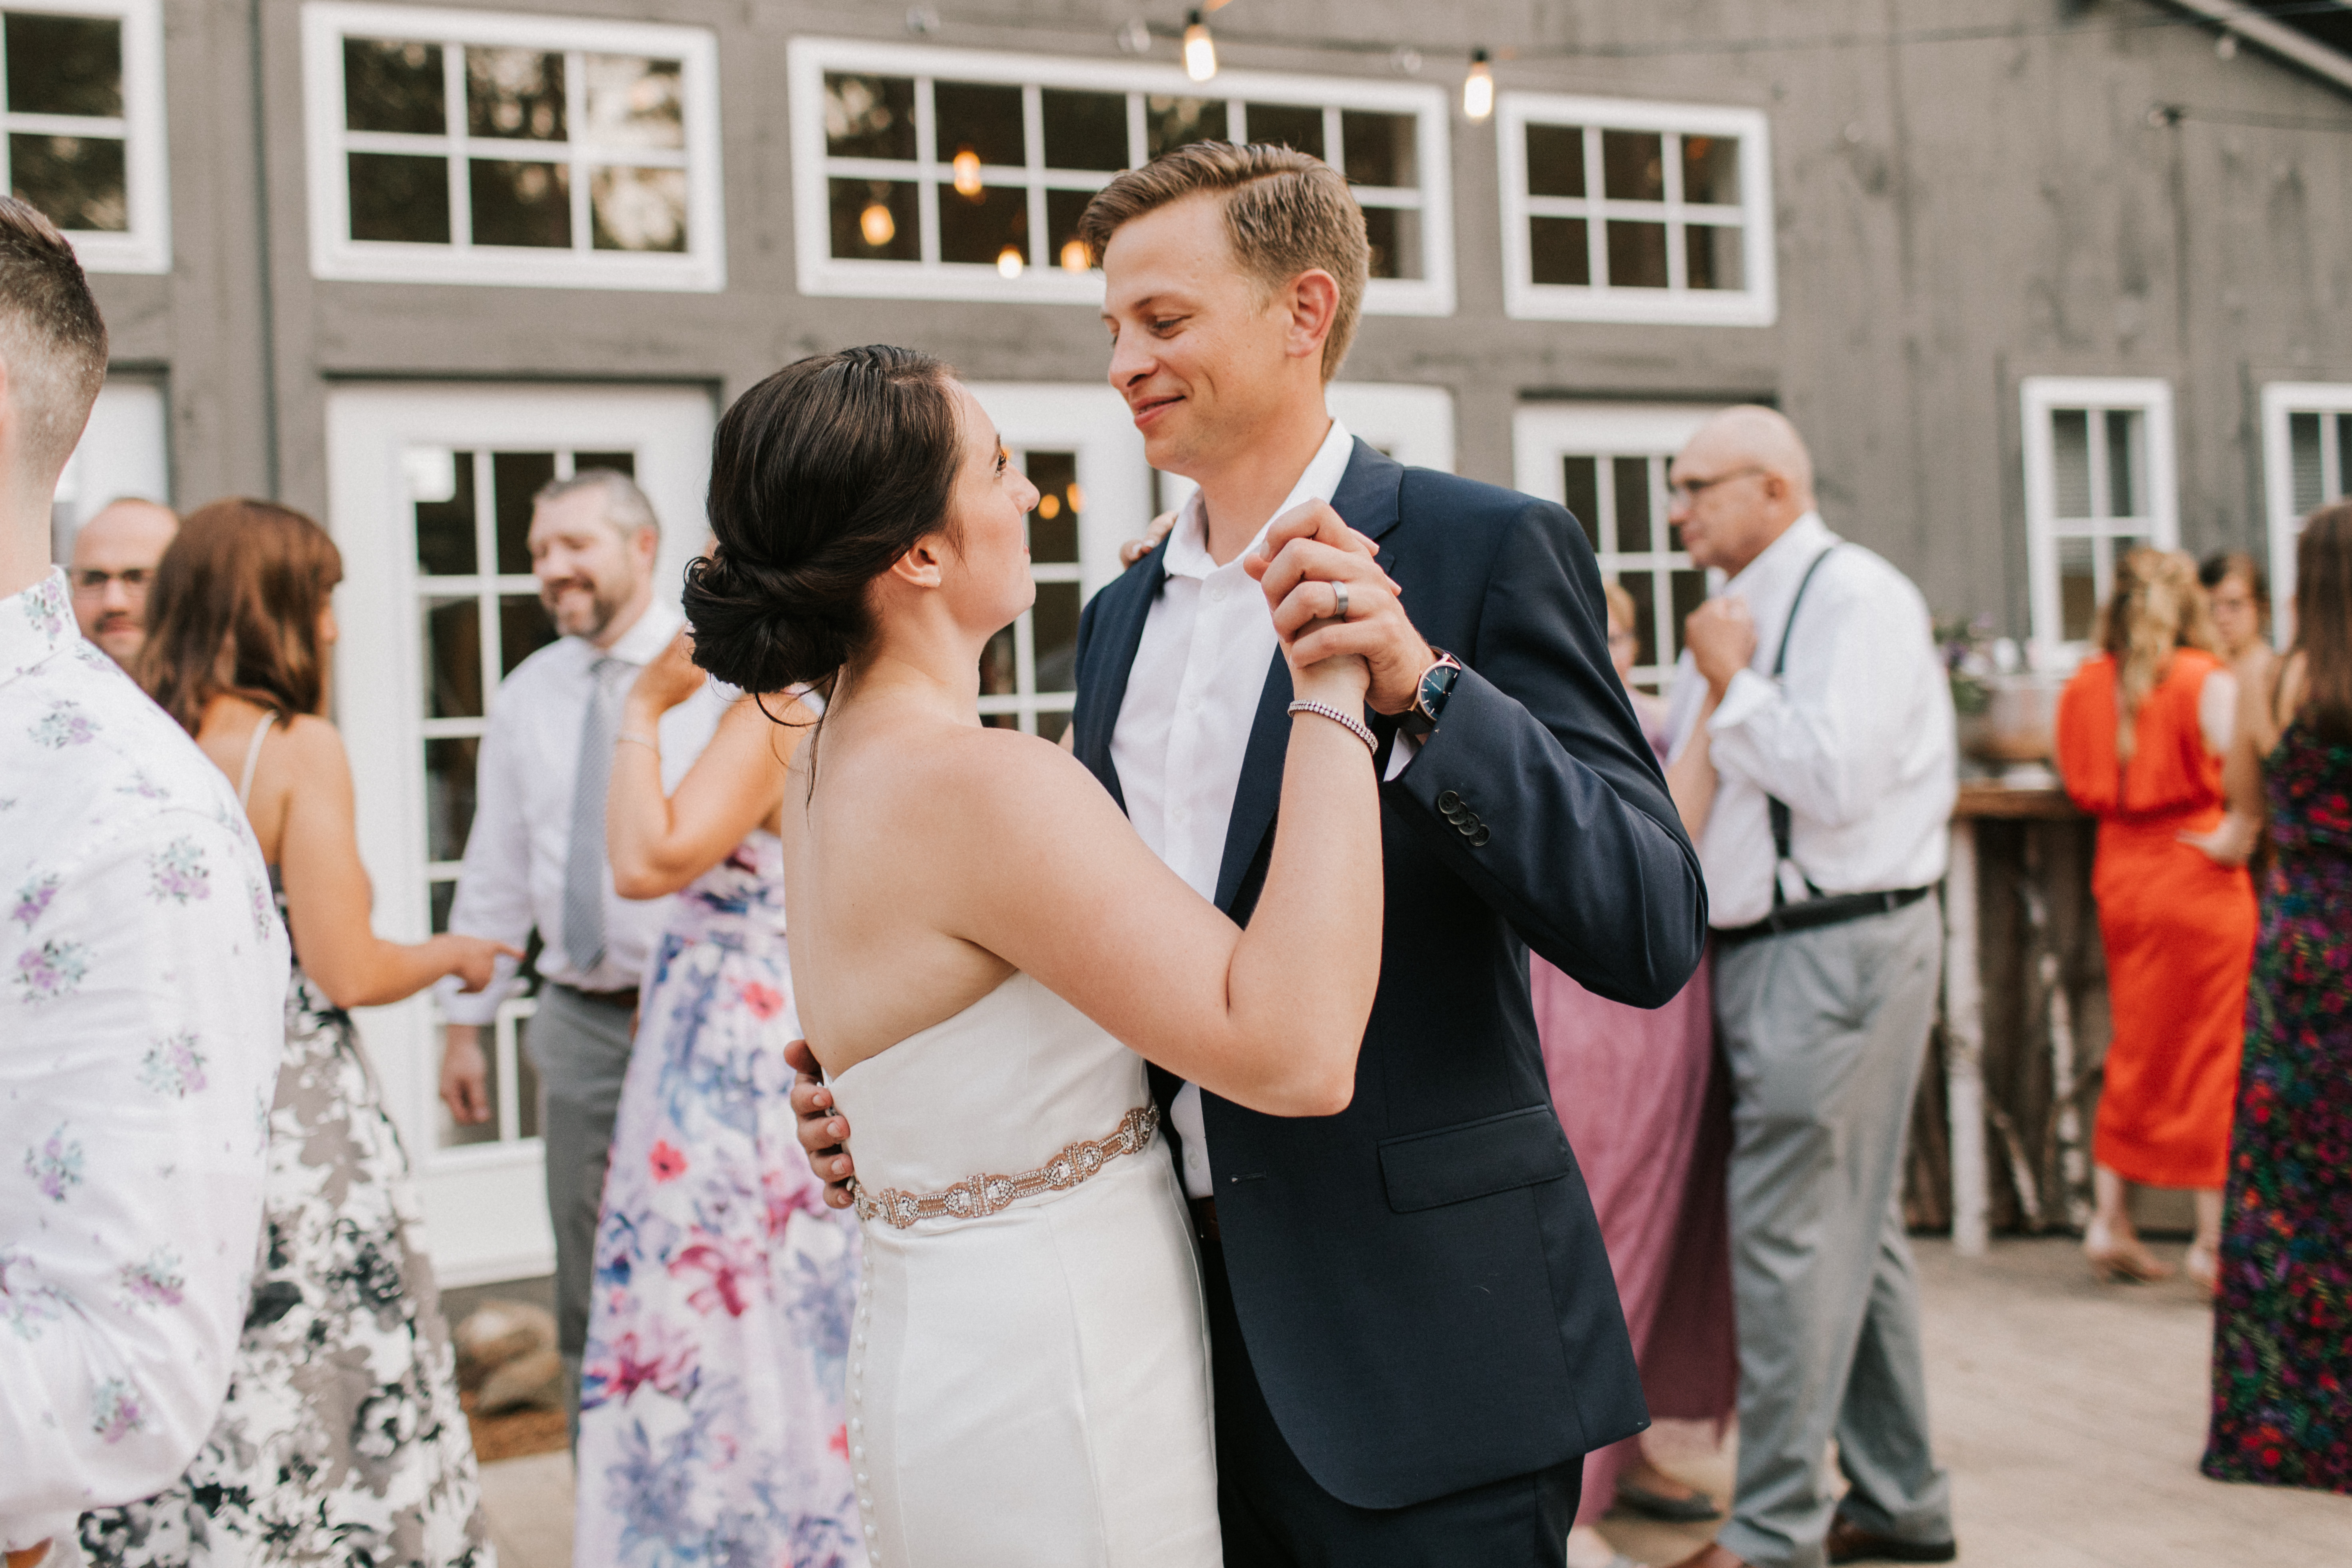 Bride and Groom dancing at Hidden Pond Wedding in Kennebunkport, Maine